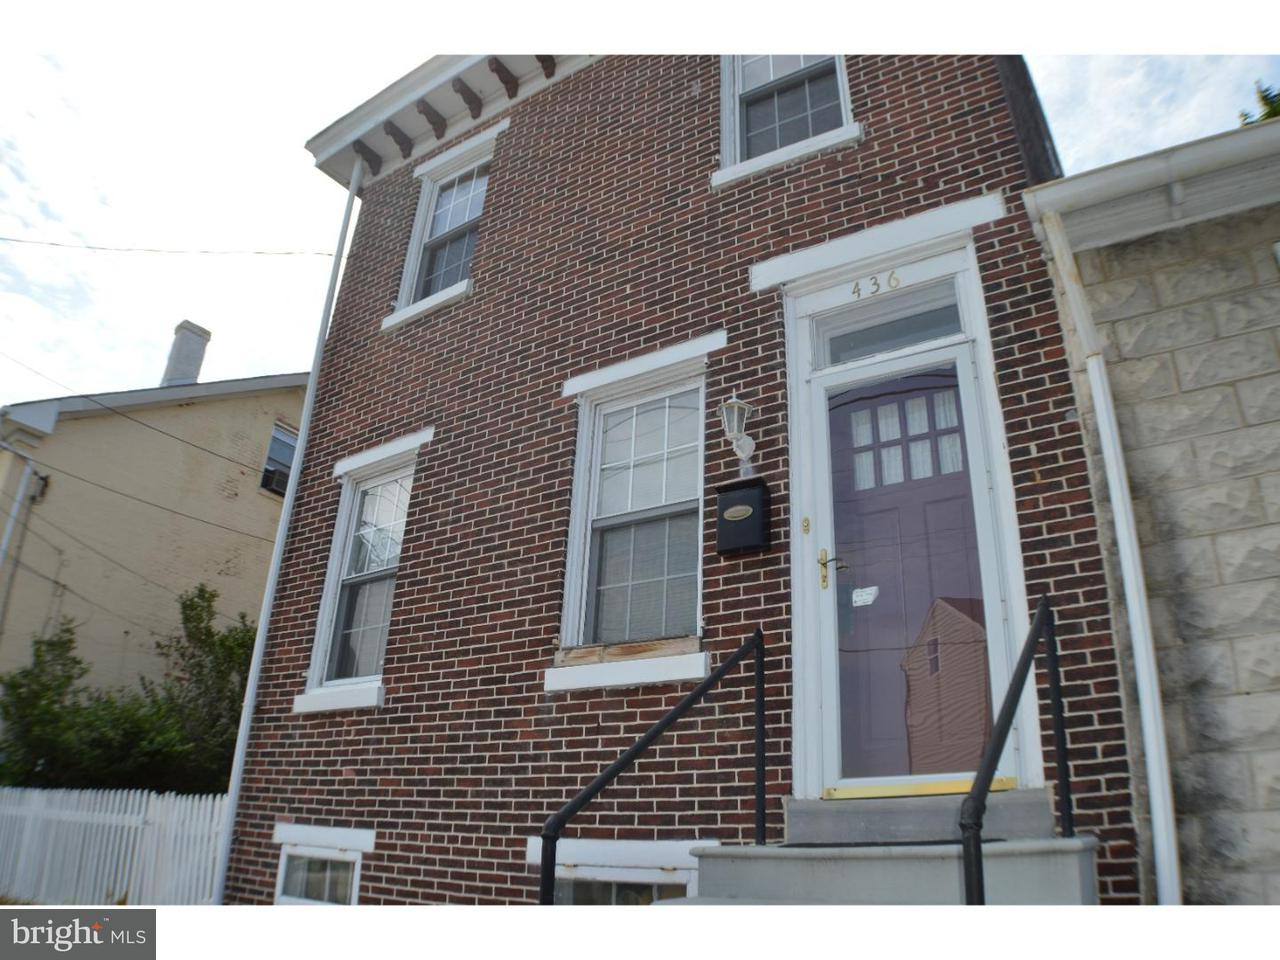 Single Family Home for Rent at 436 FORD Street Bridgeport, Pennsylvania 19405 United States